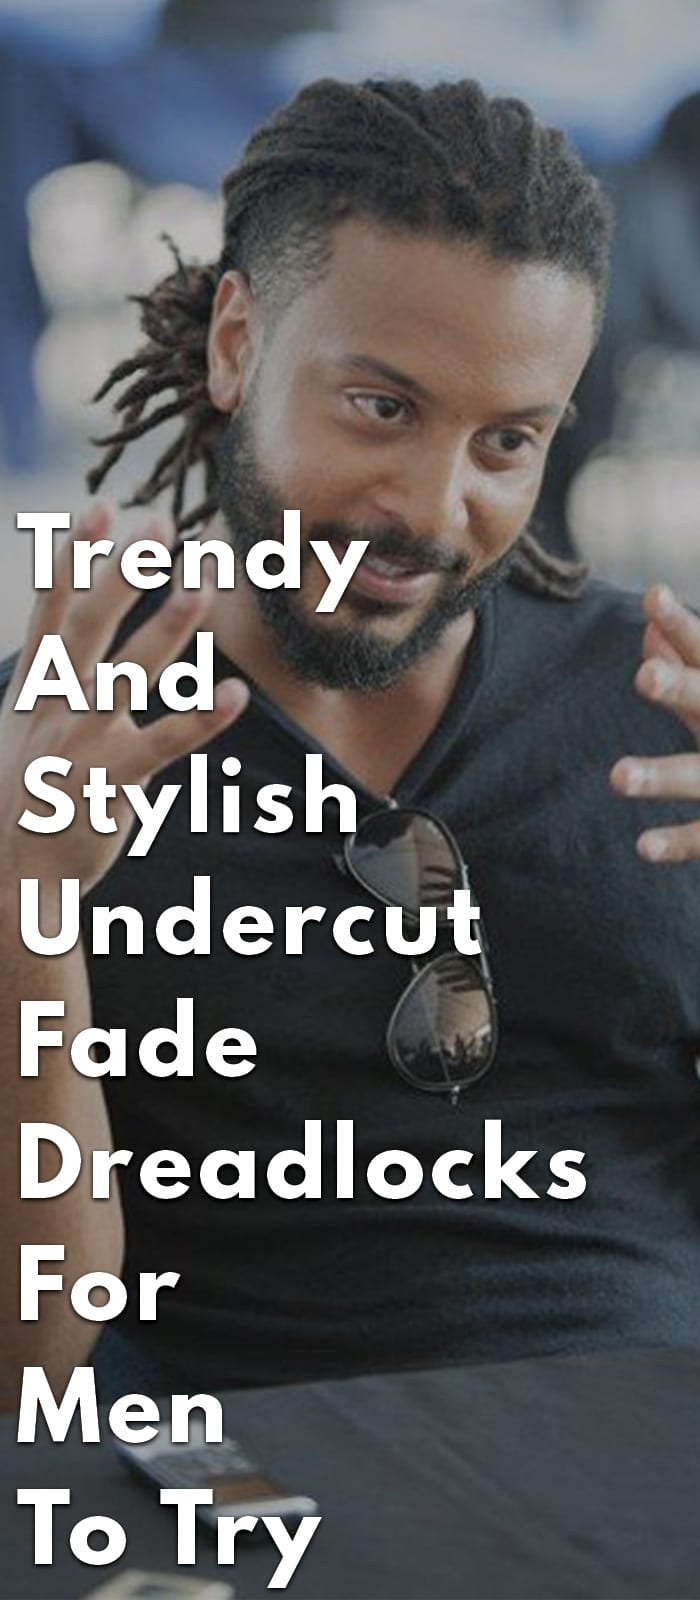 Trendy And Stylish Undercut Fade Dreadlocks For Men To Try